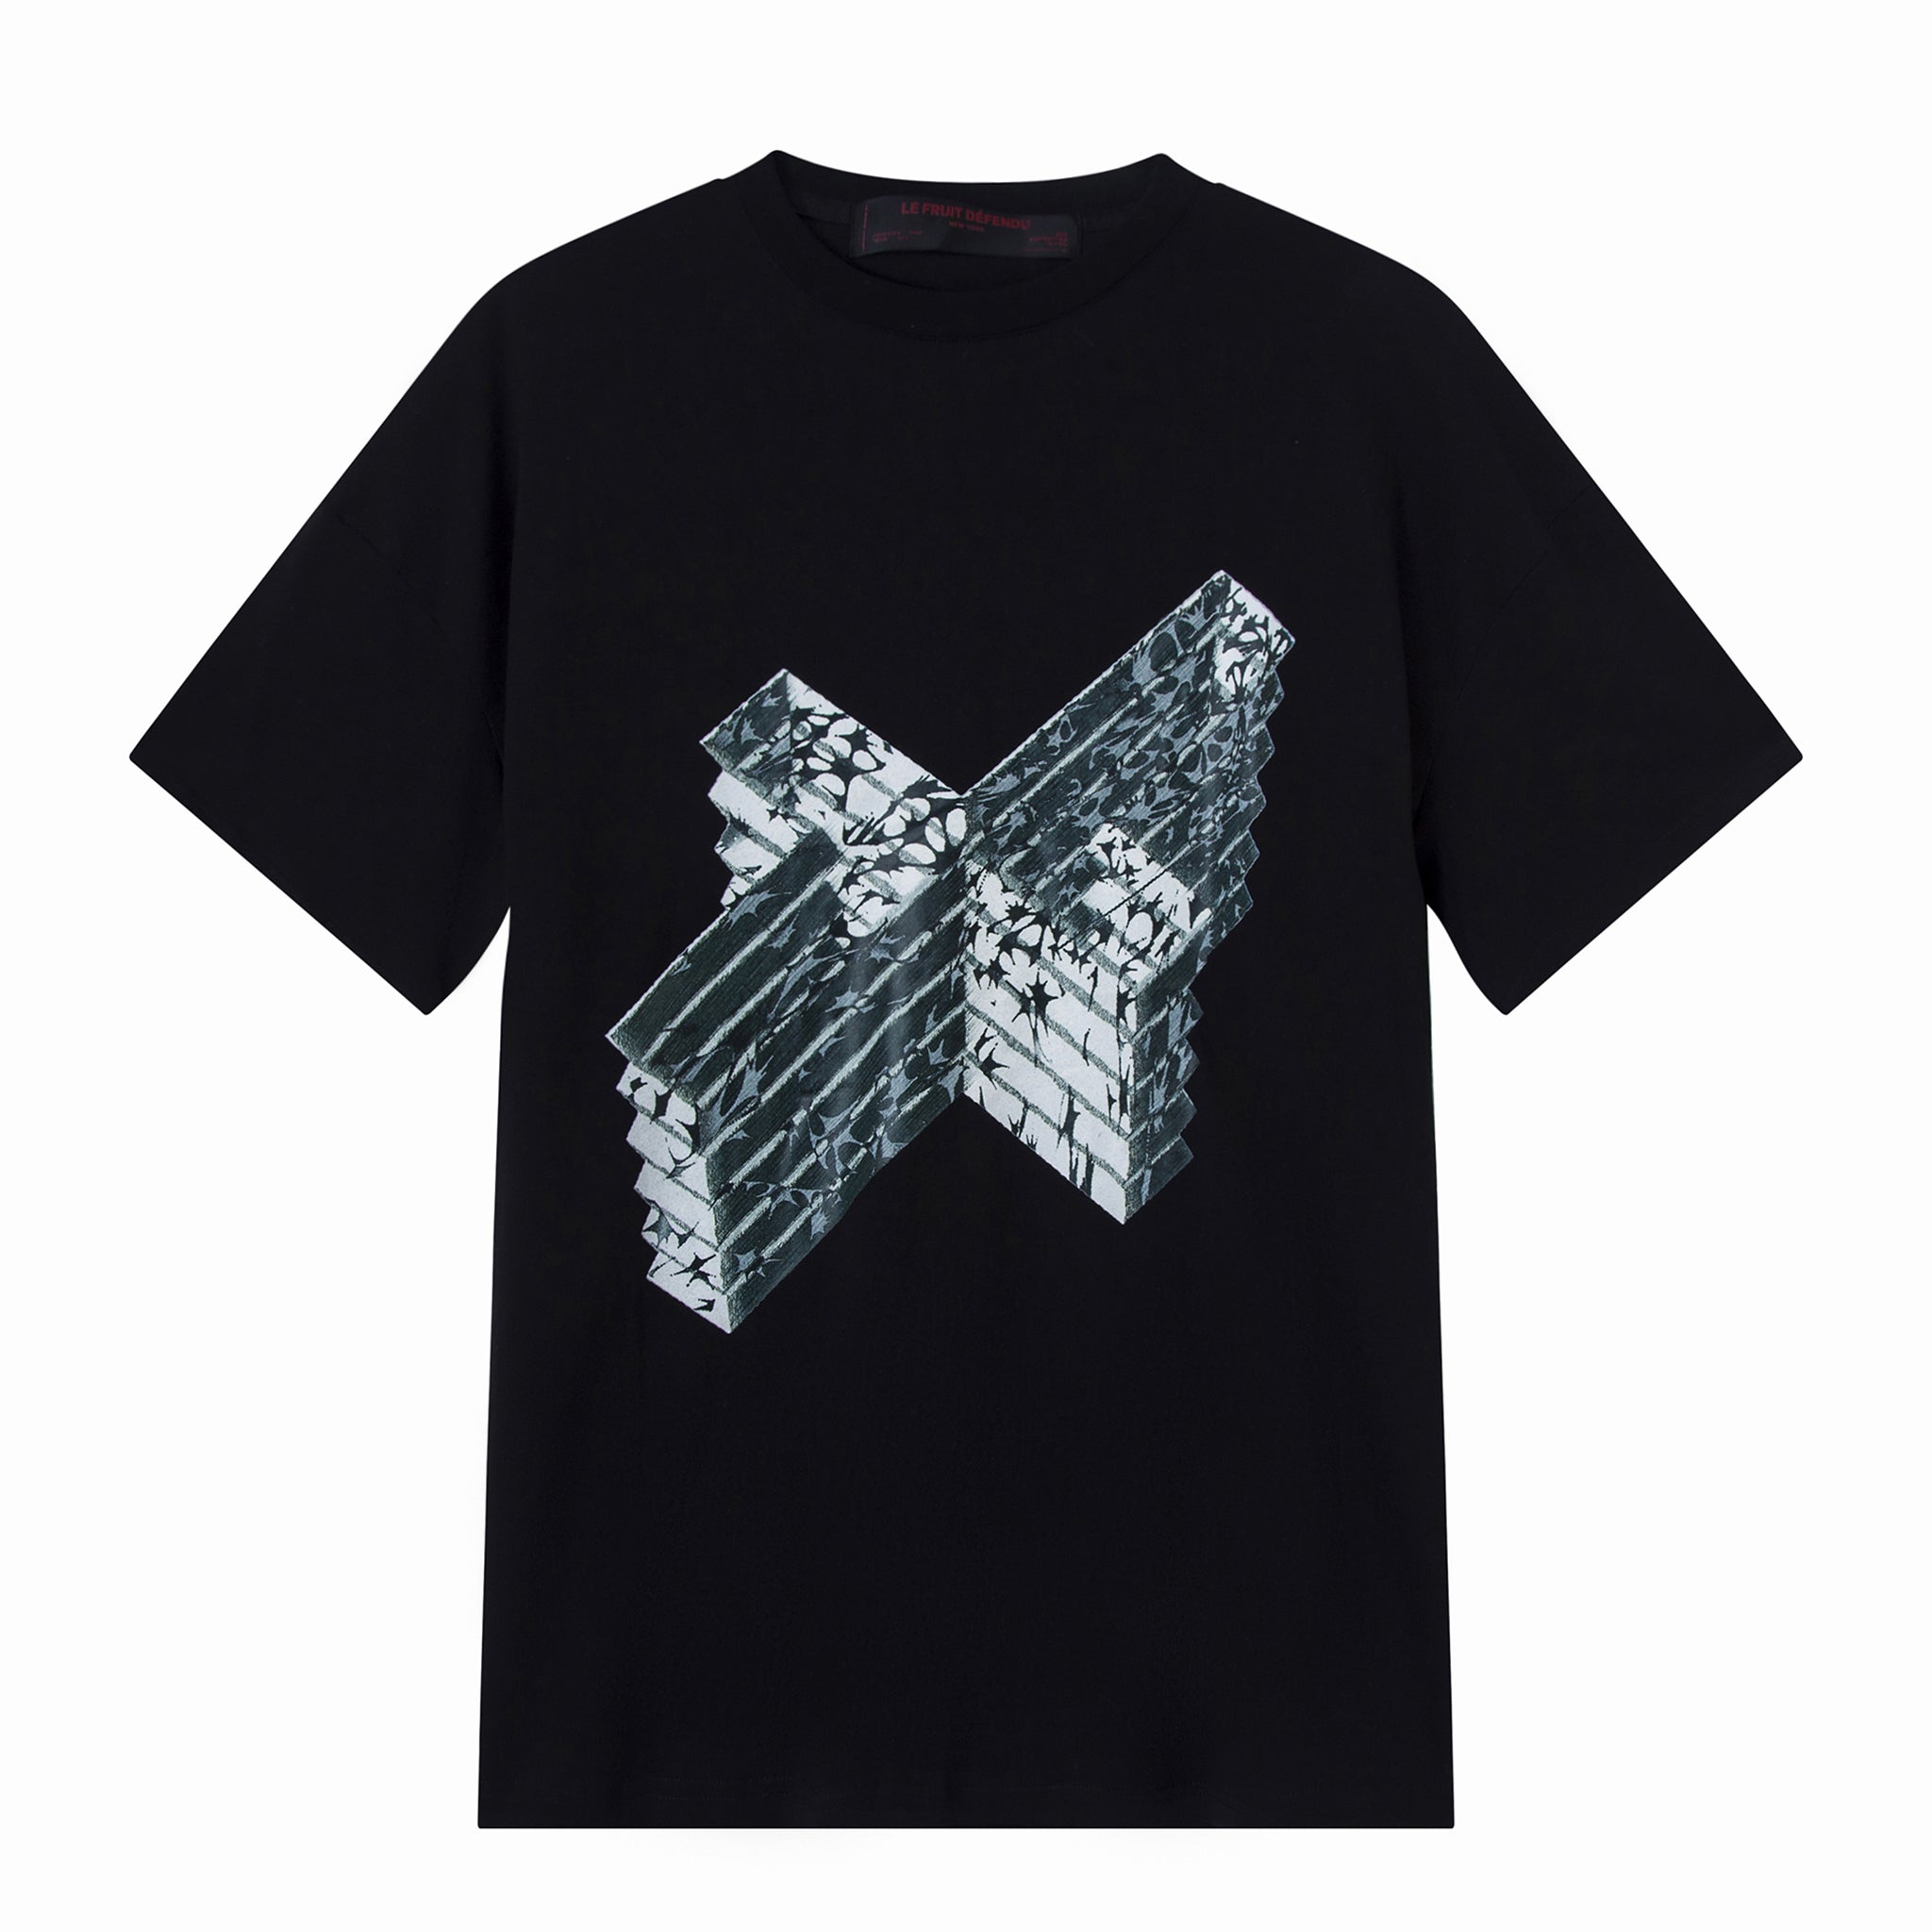 Le Fruit Defendu Multi – X T-Shirt